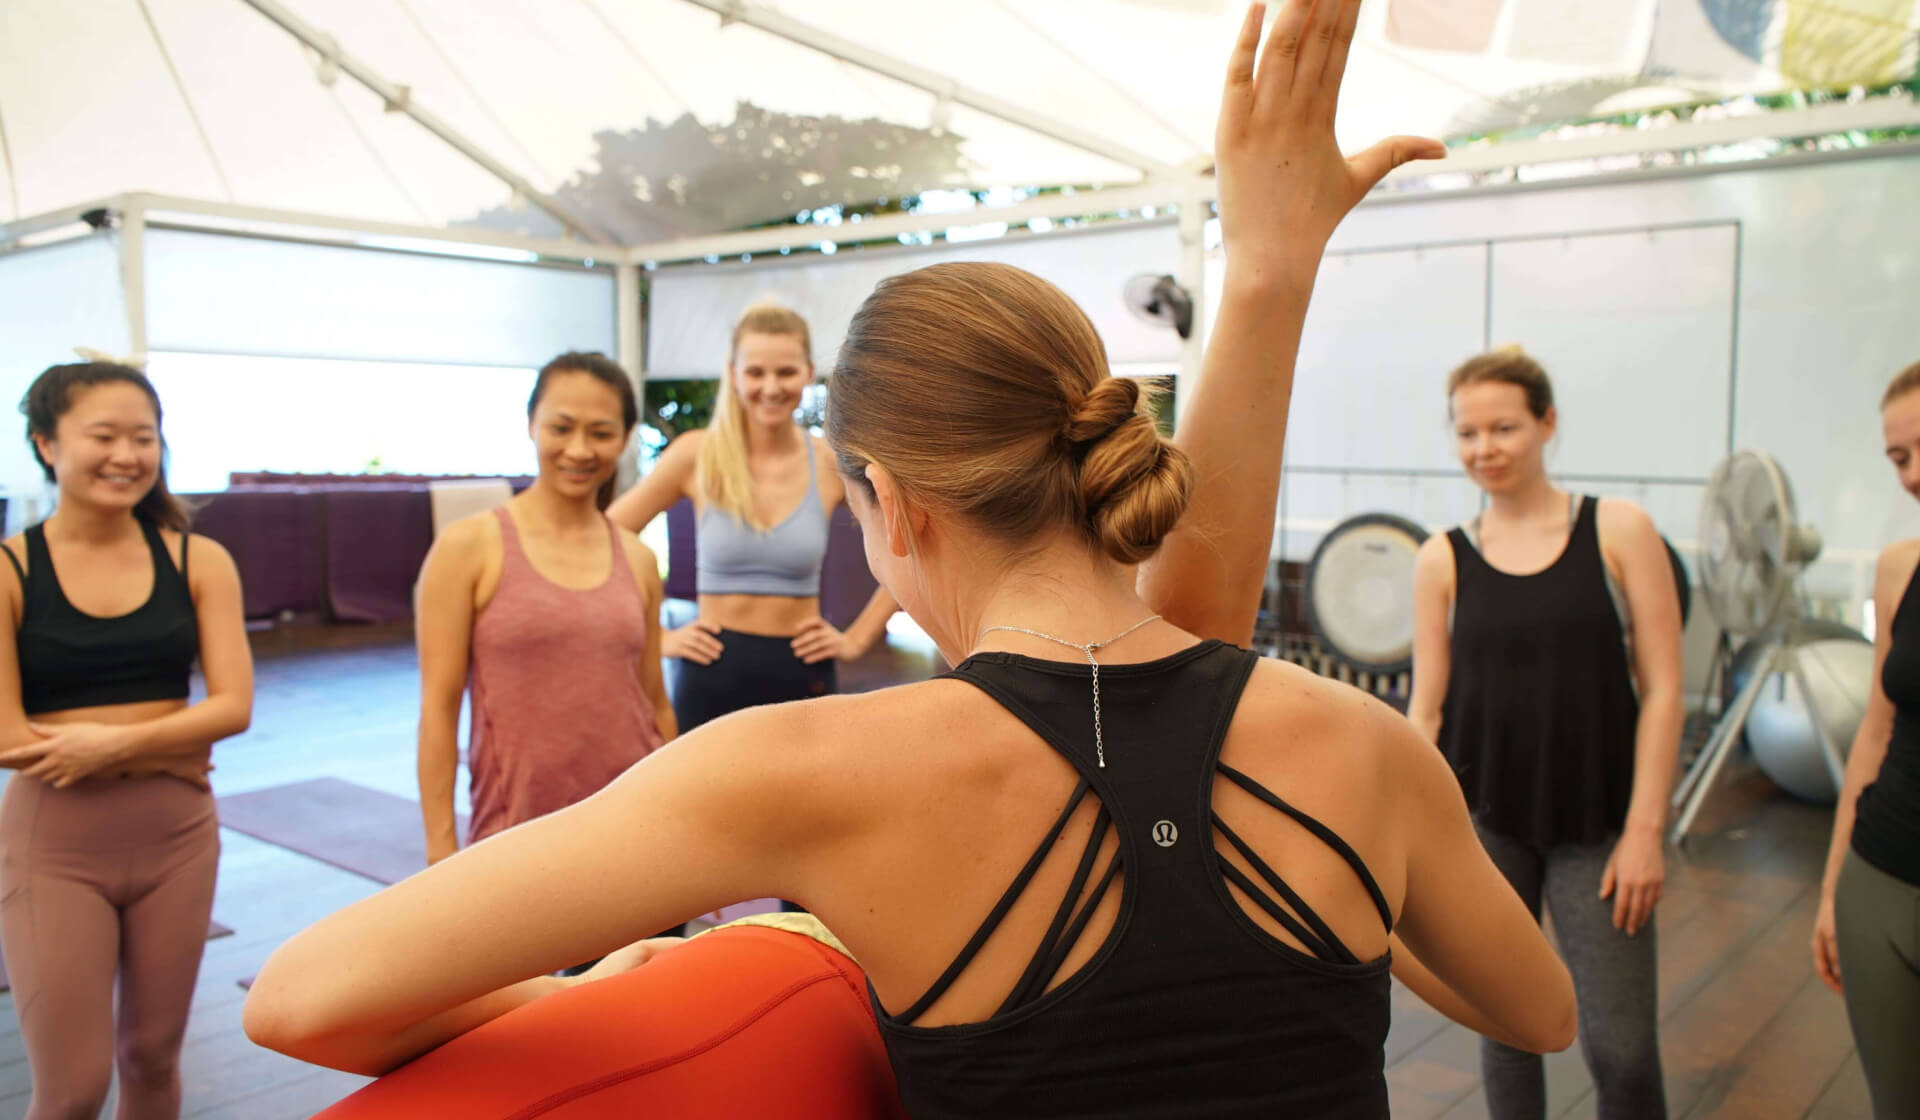 The backside of a yoga teacher assisting a student in a yoga pose with a group of yoga teacher trainees watching and learning the hands-on assist in a yoga shala